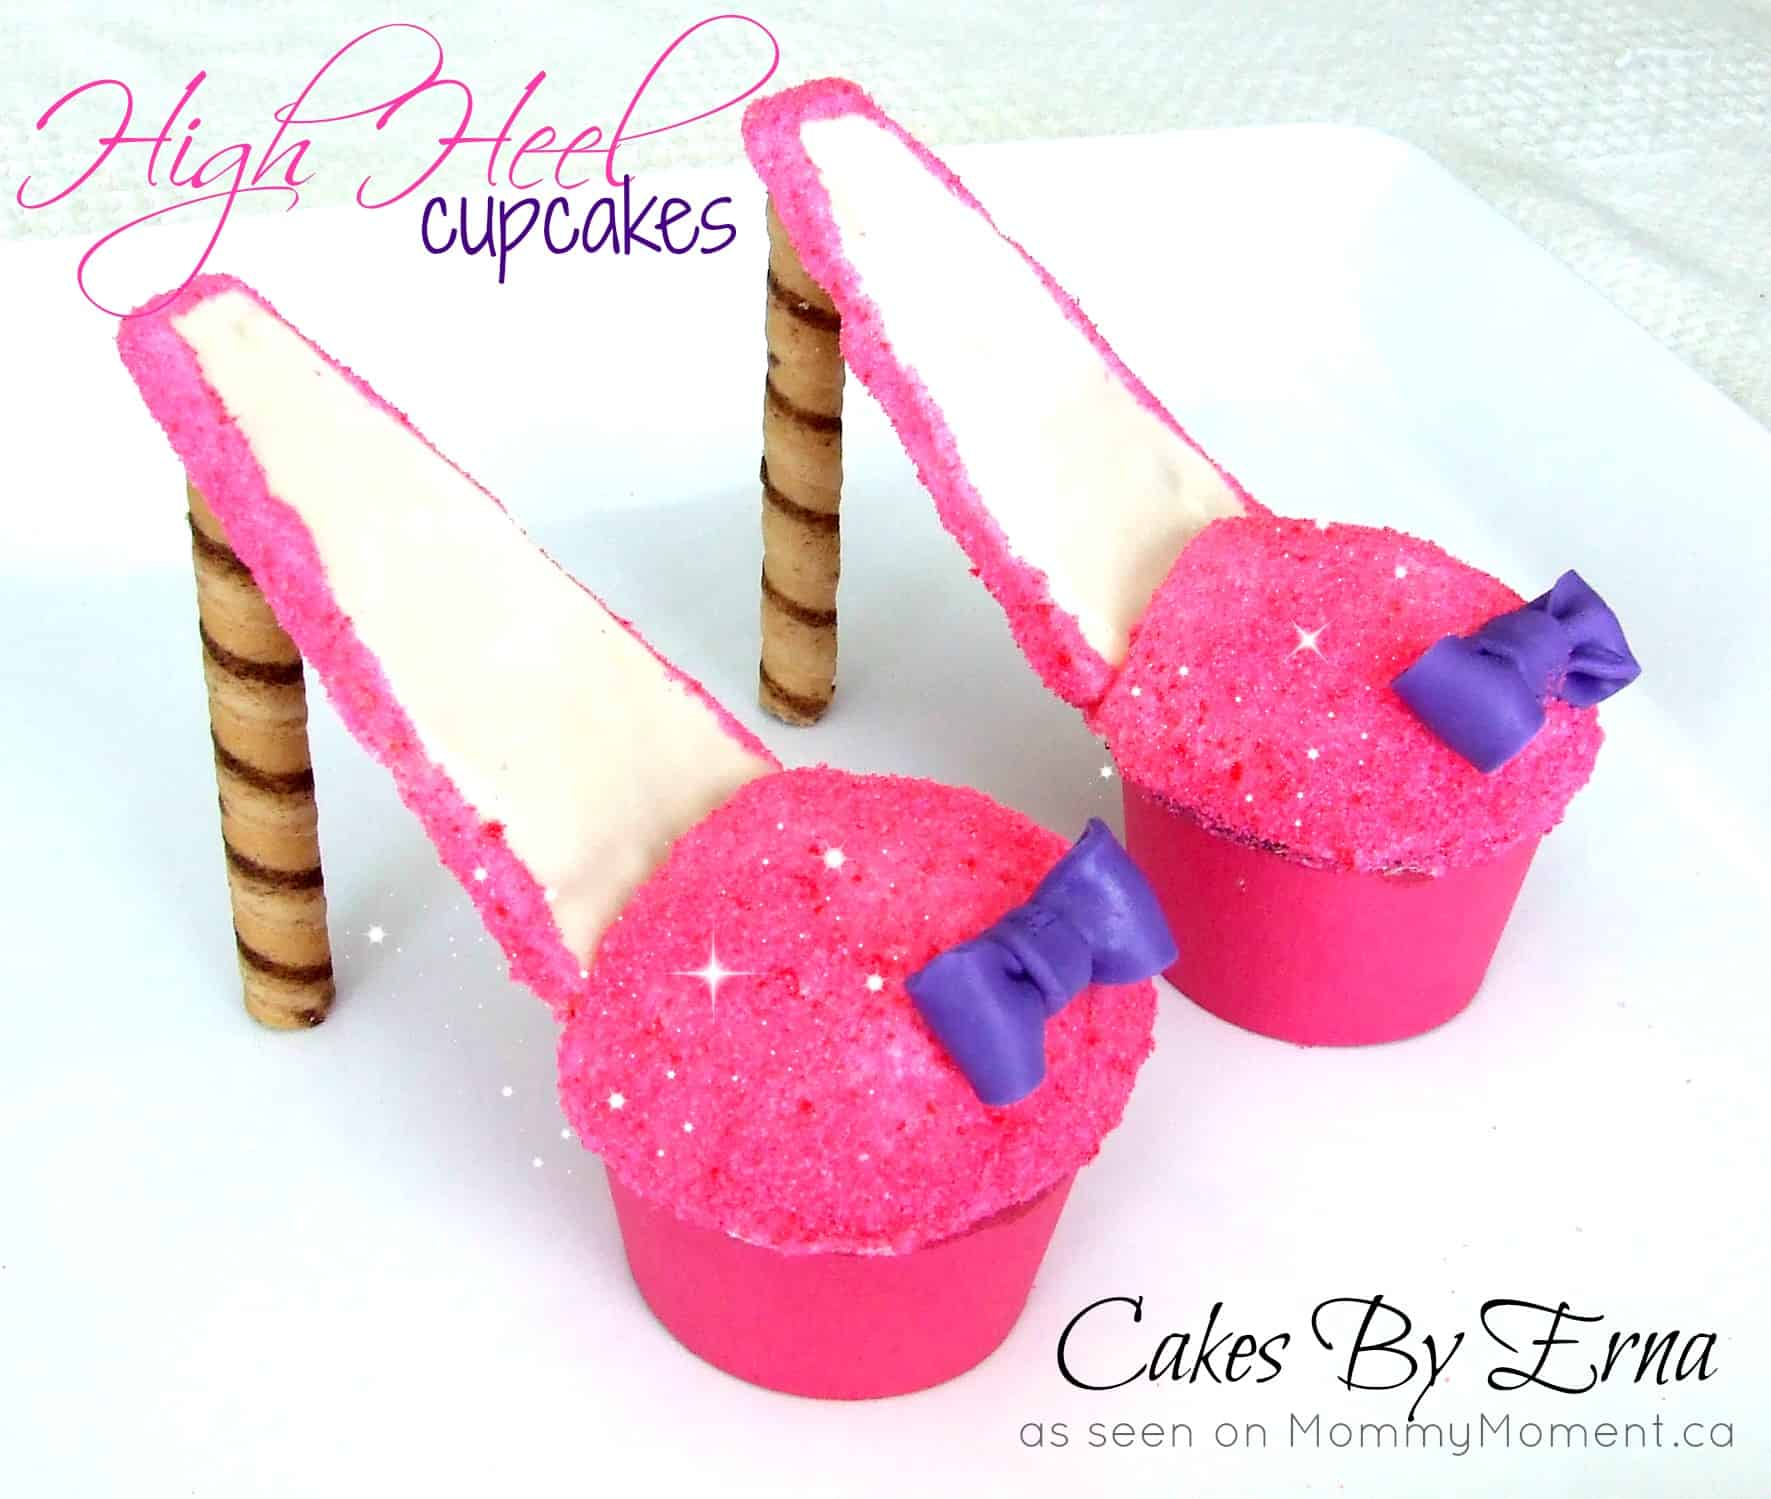 had a lot of fun with these high heel cupcakes